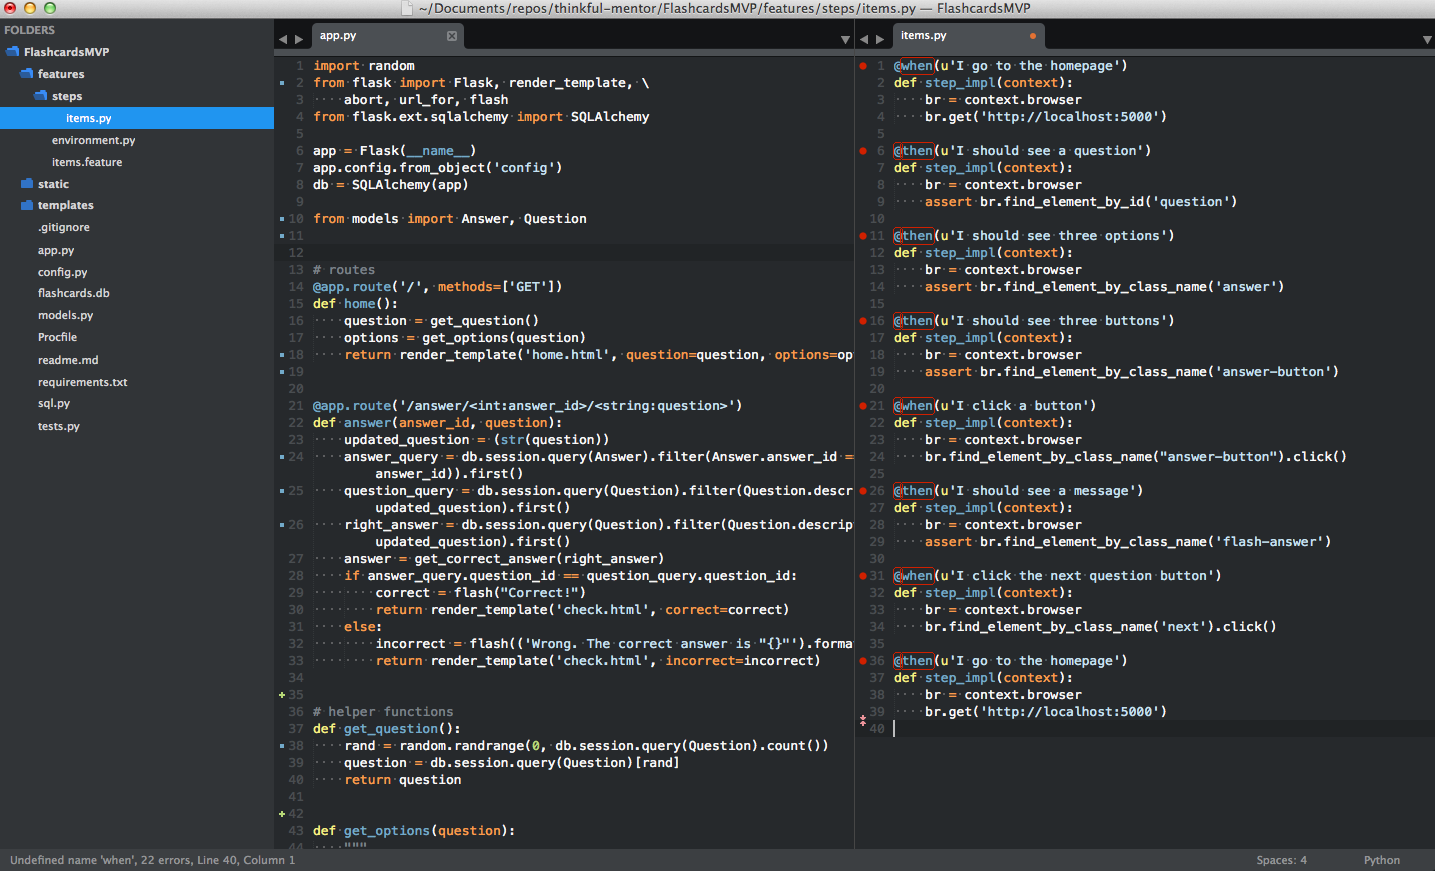 A screenshot of the Sublime Text 3 Splitscreen Freature